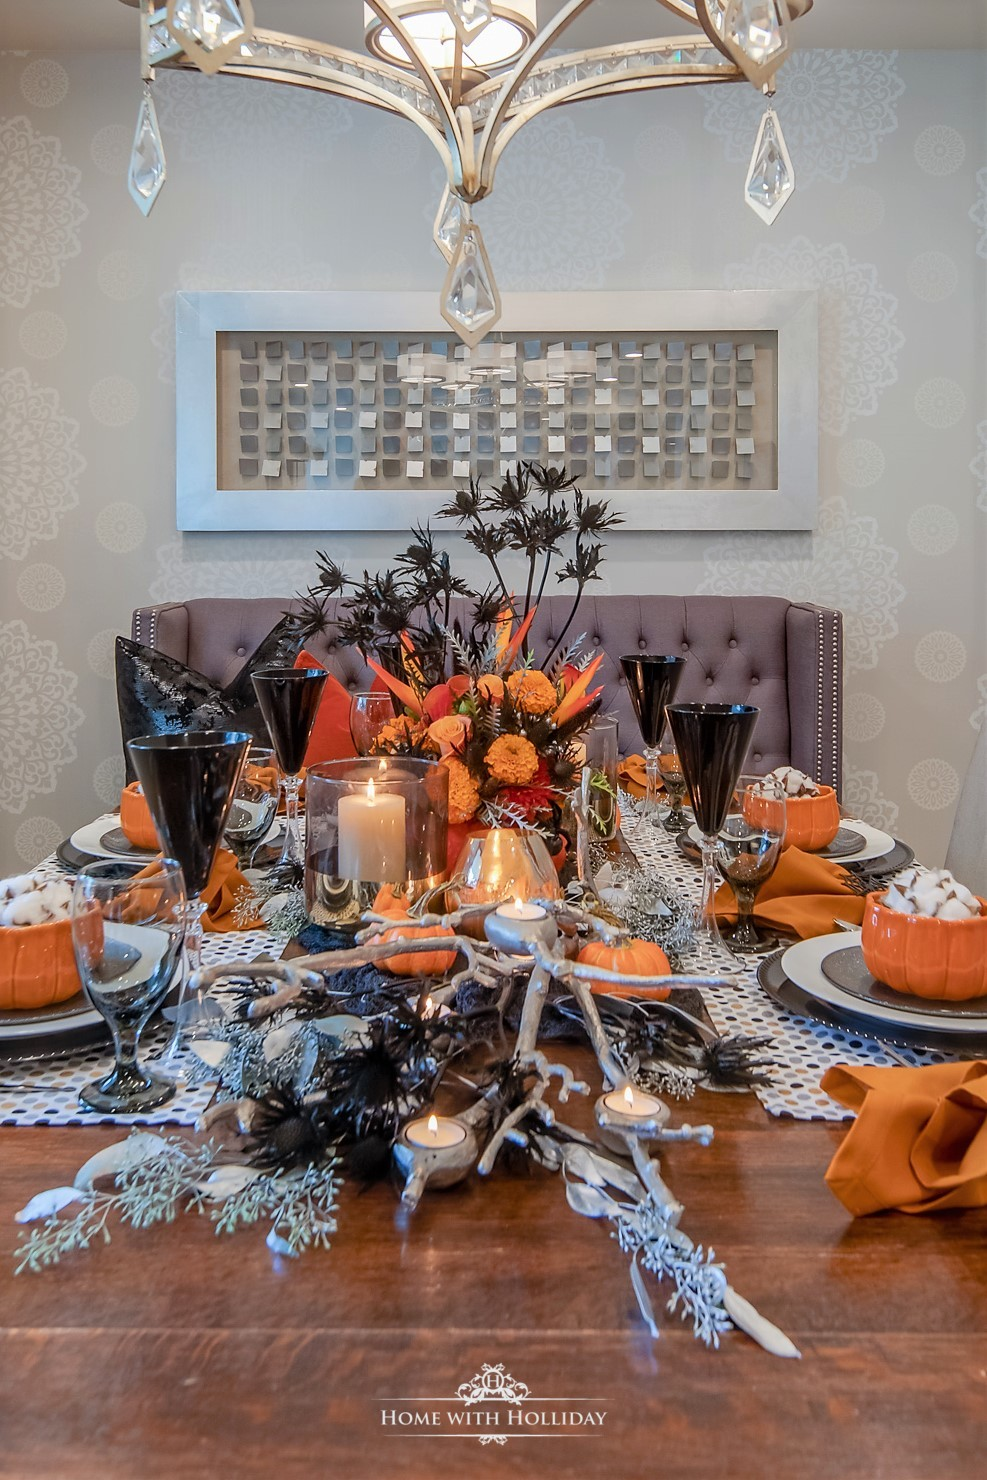 Holiday Hosting at Home #3 - Holiday Decor, Tablescapes and Entertaining Ideas